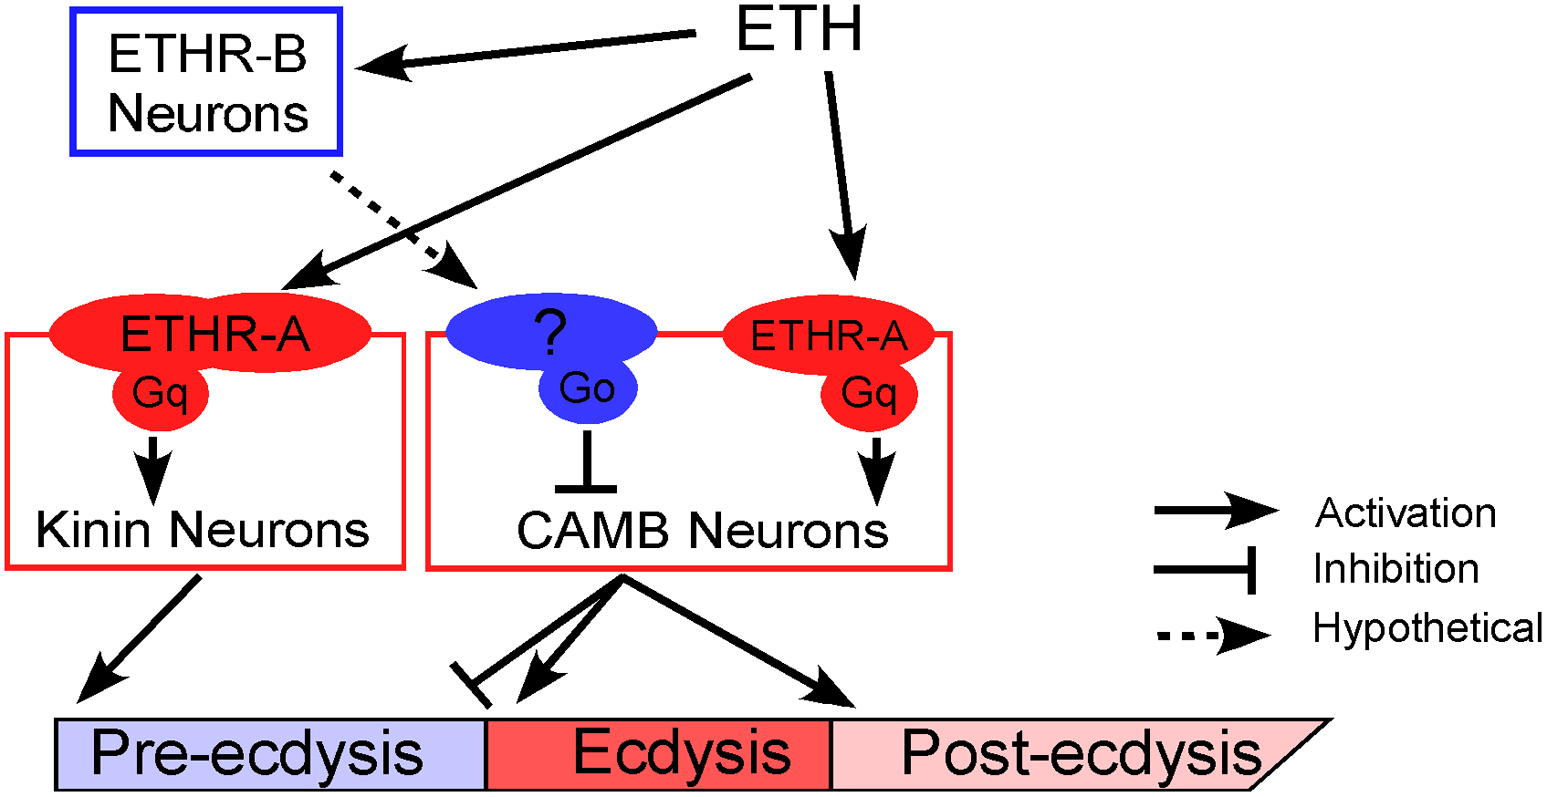 A model depicting functional roles of kinin and CAMB neurons in scheduling of the ecdysis FAP.